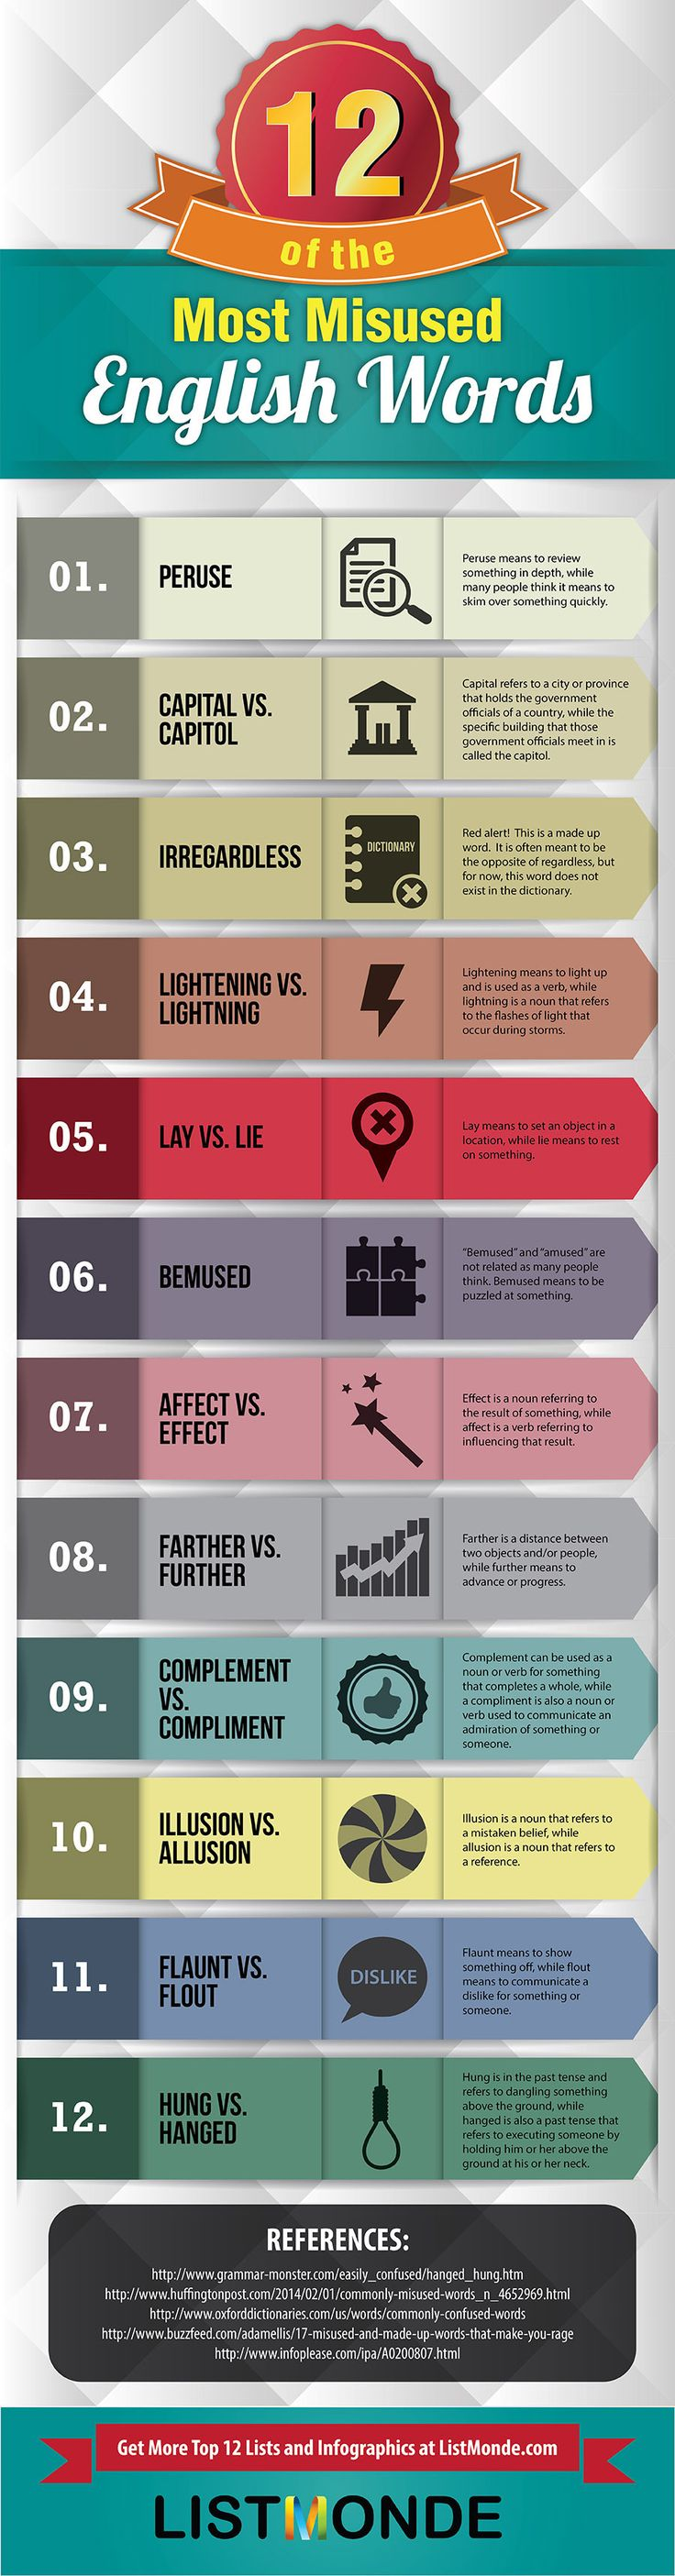 12 of the most misused English words: Good writers share many qualities, but simplicity and clarity are two of the most important. This infographic highlights some of the most commonly misused words in English.